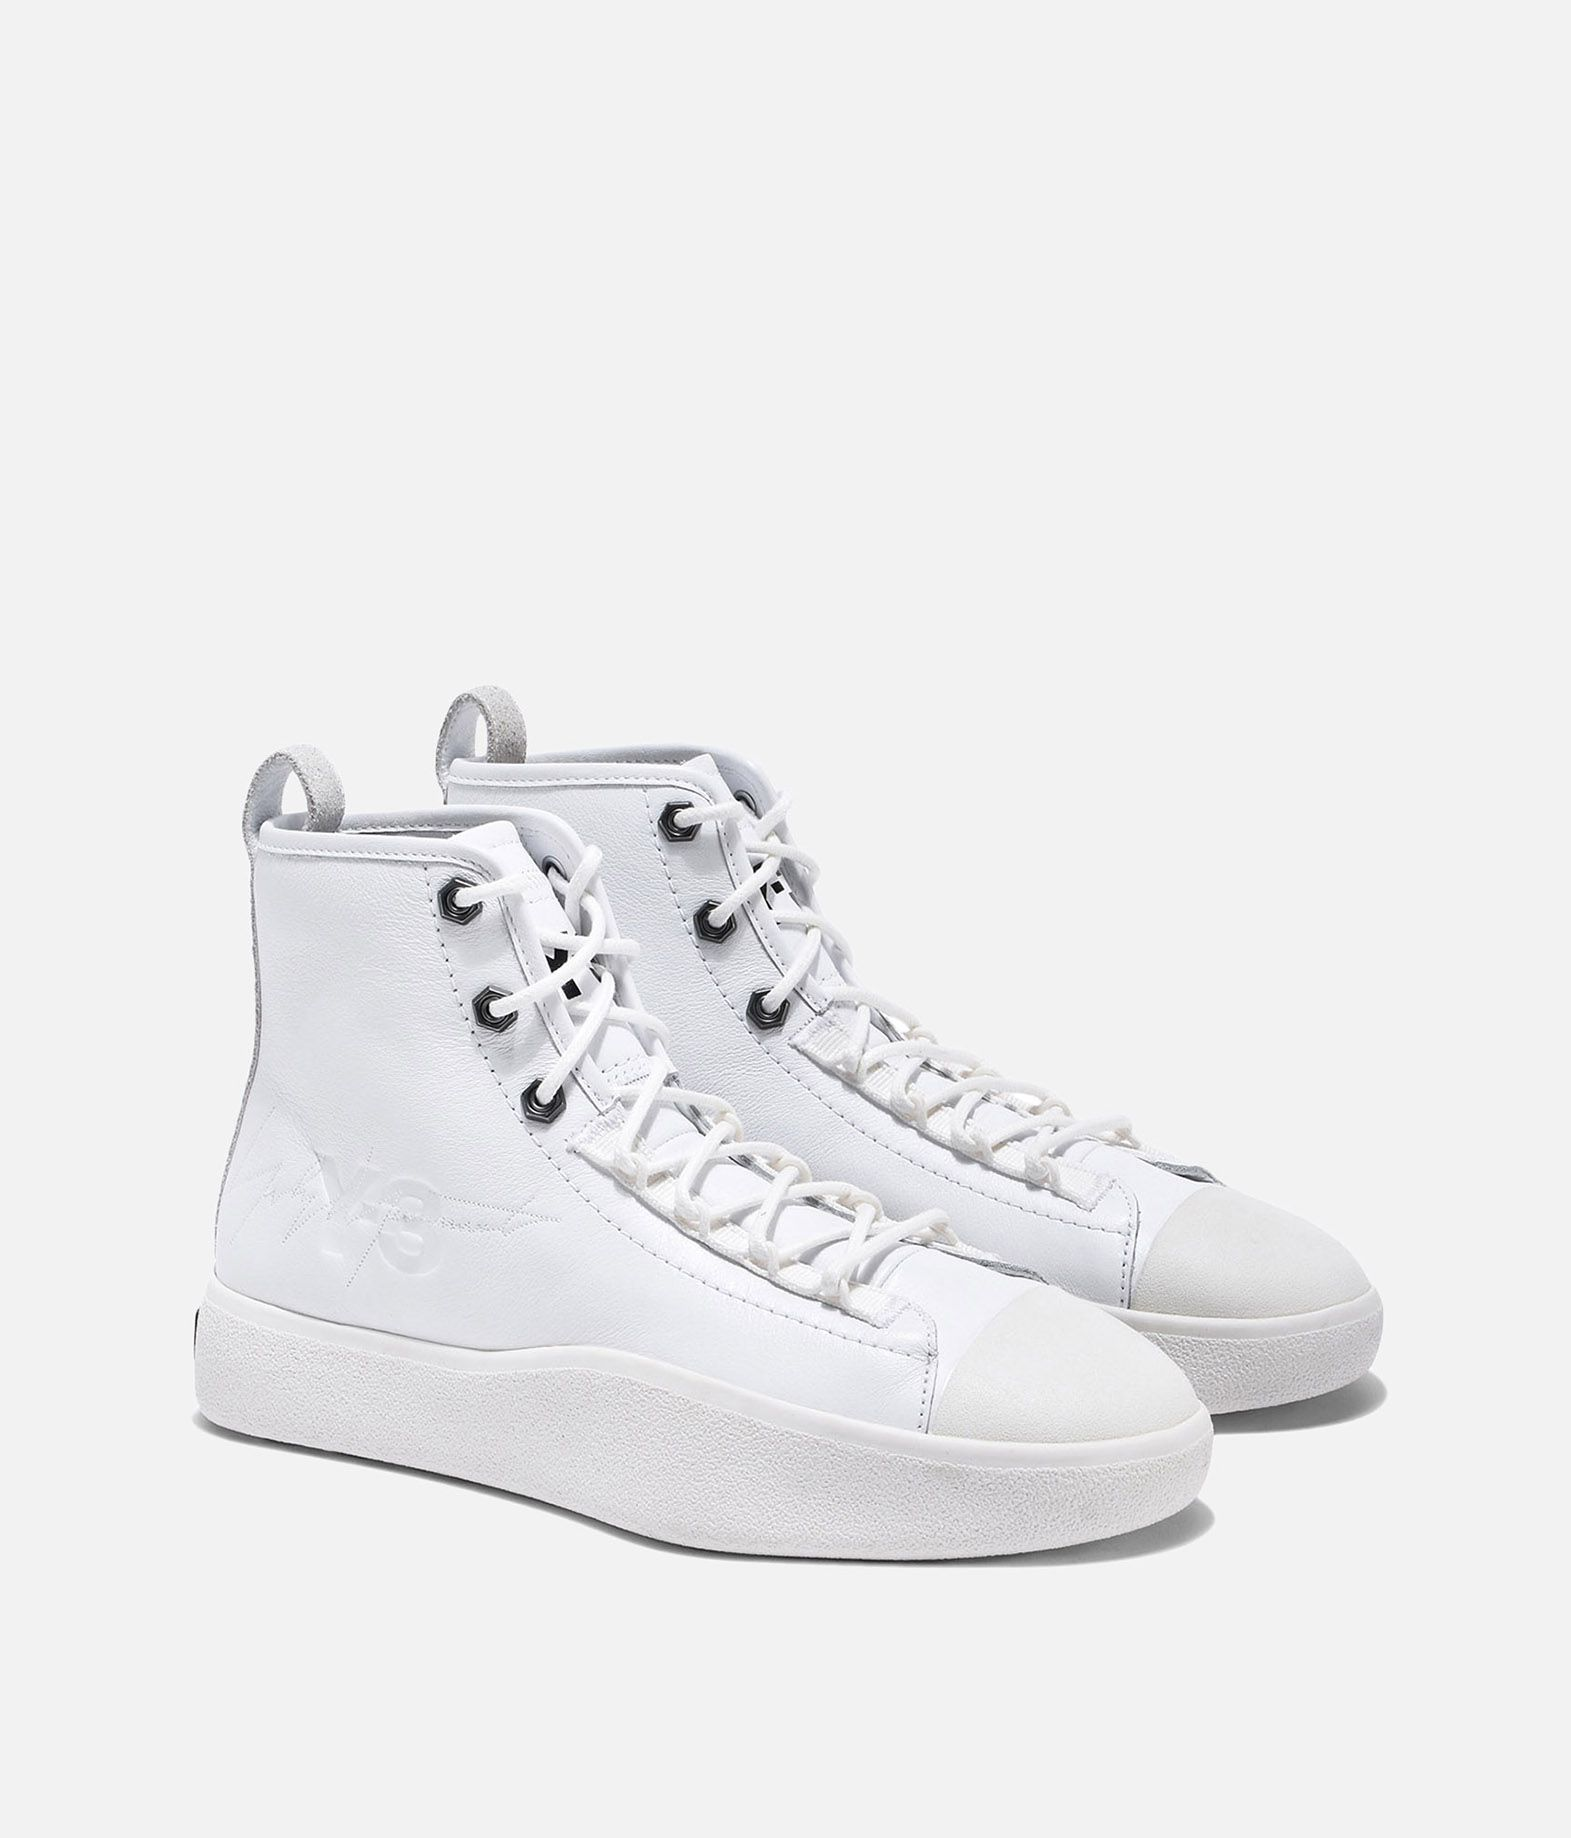 d9b35c290 ... Y-3 Y-3 Bashyo II High-top sneakers E r ...